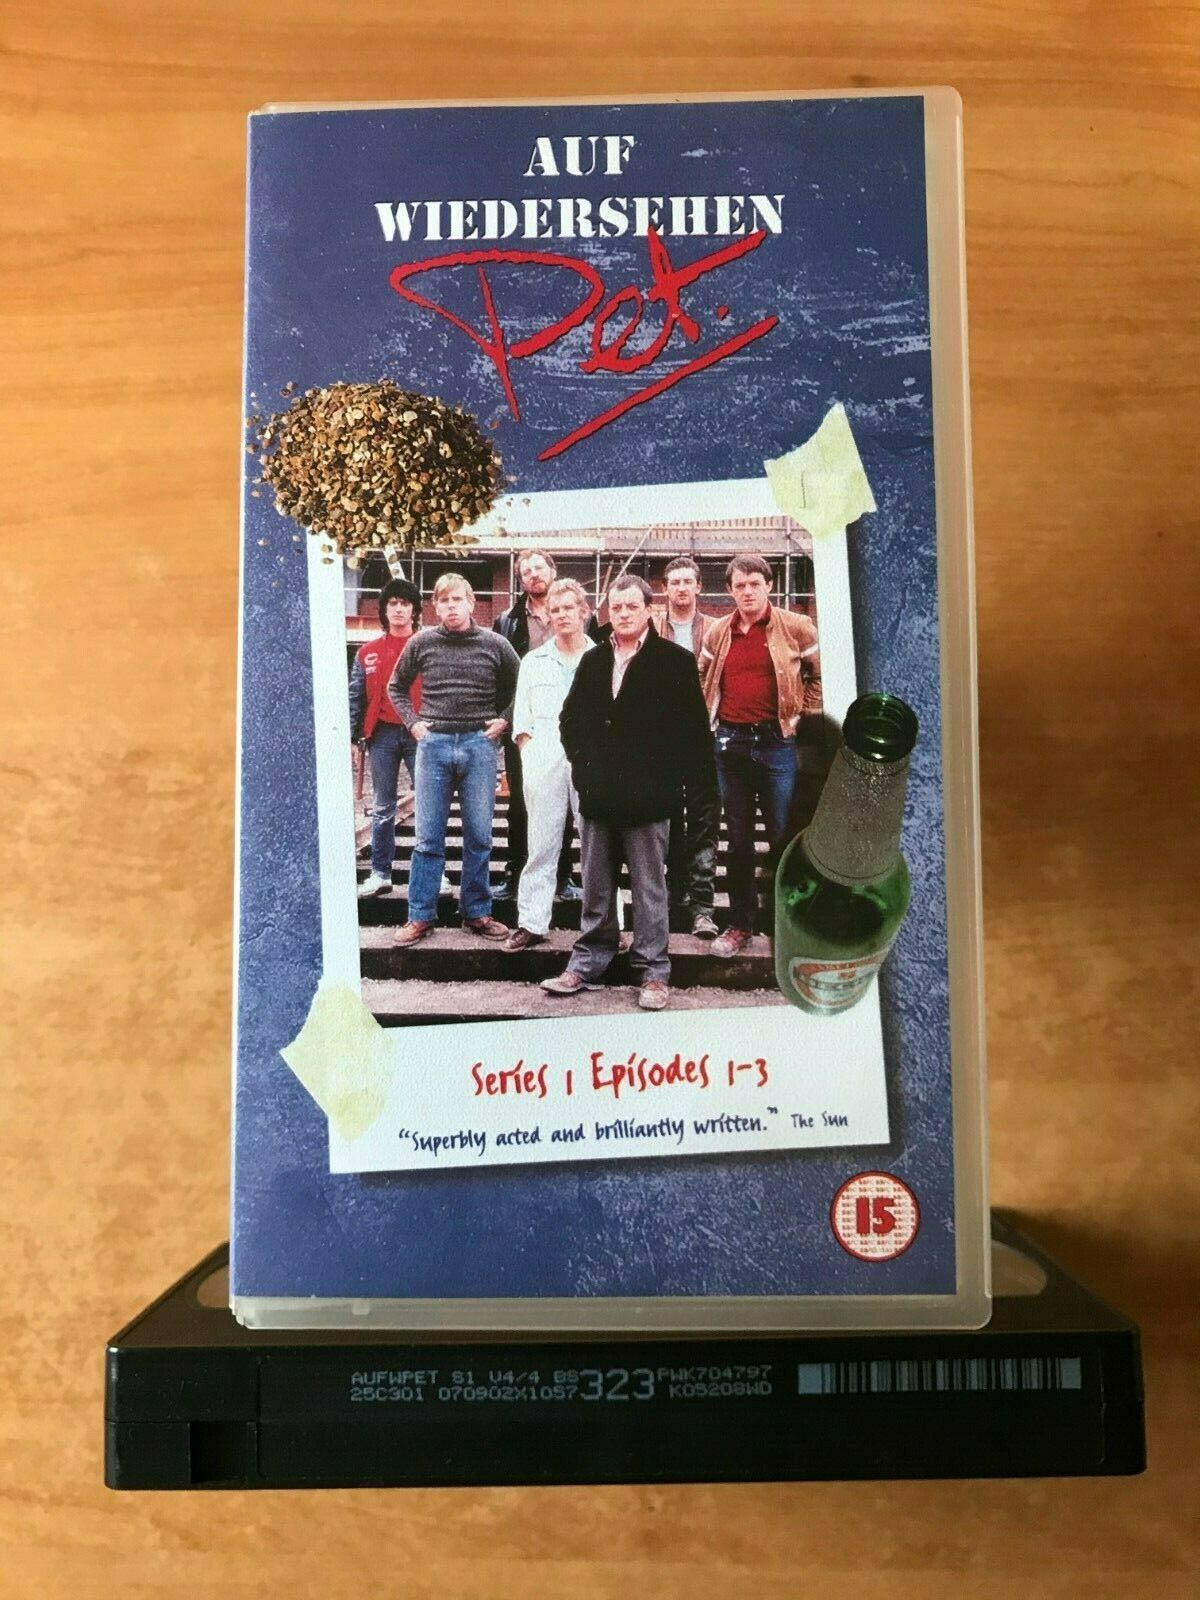 Auf Wiedershen Pet (Series 1, Ep. 1-3): If I Were A Carpenter - TV Series - VHS